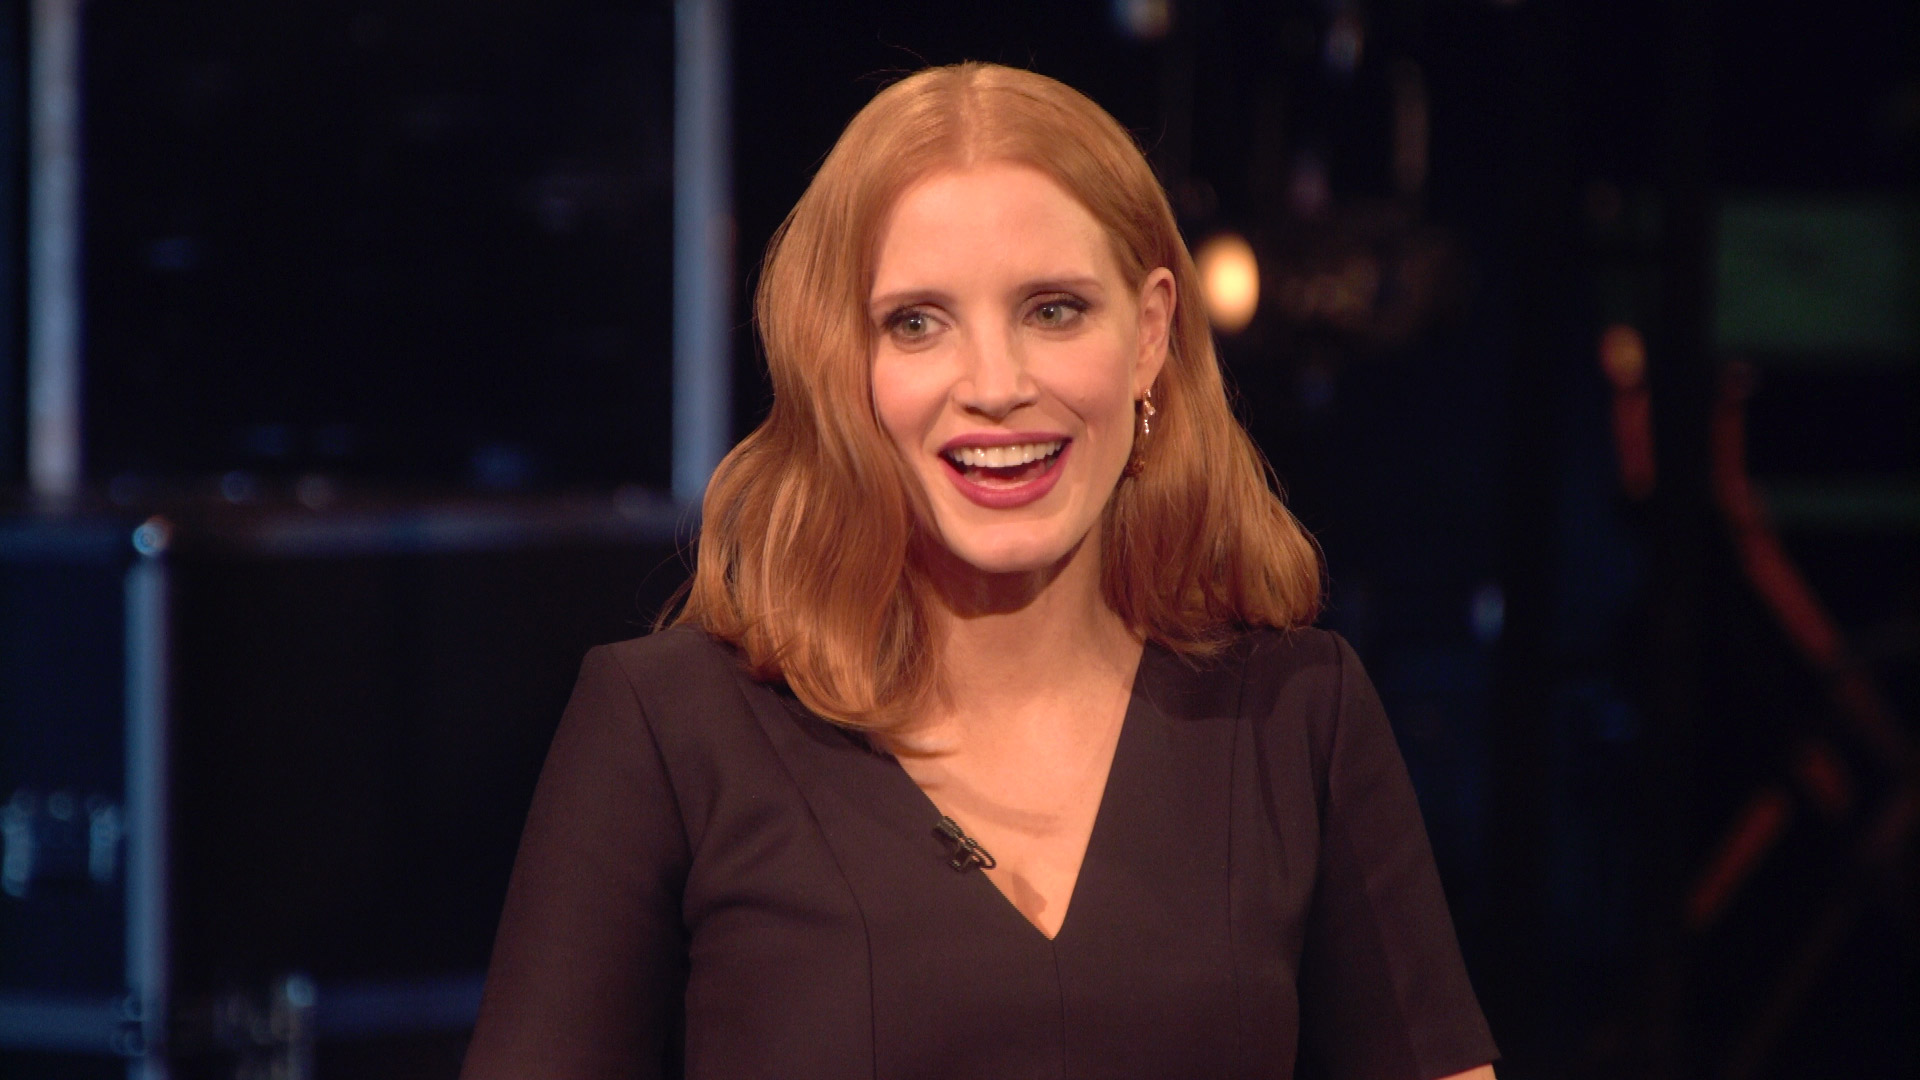 Jessica Chastain Cut Class For Shakespeare